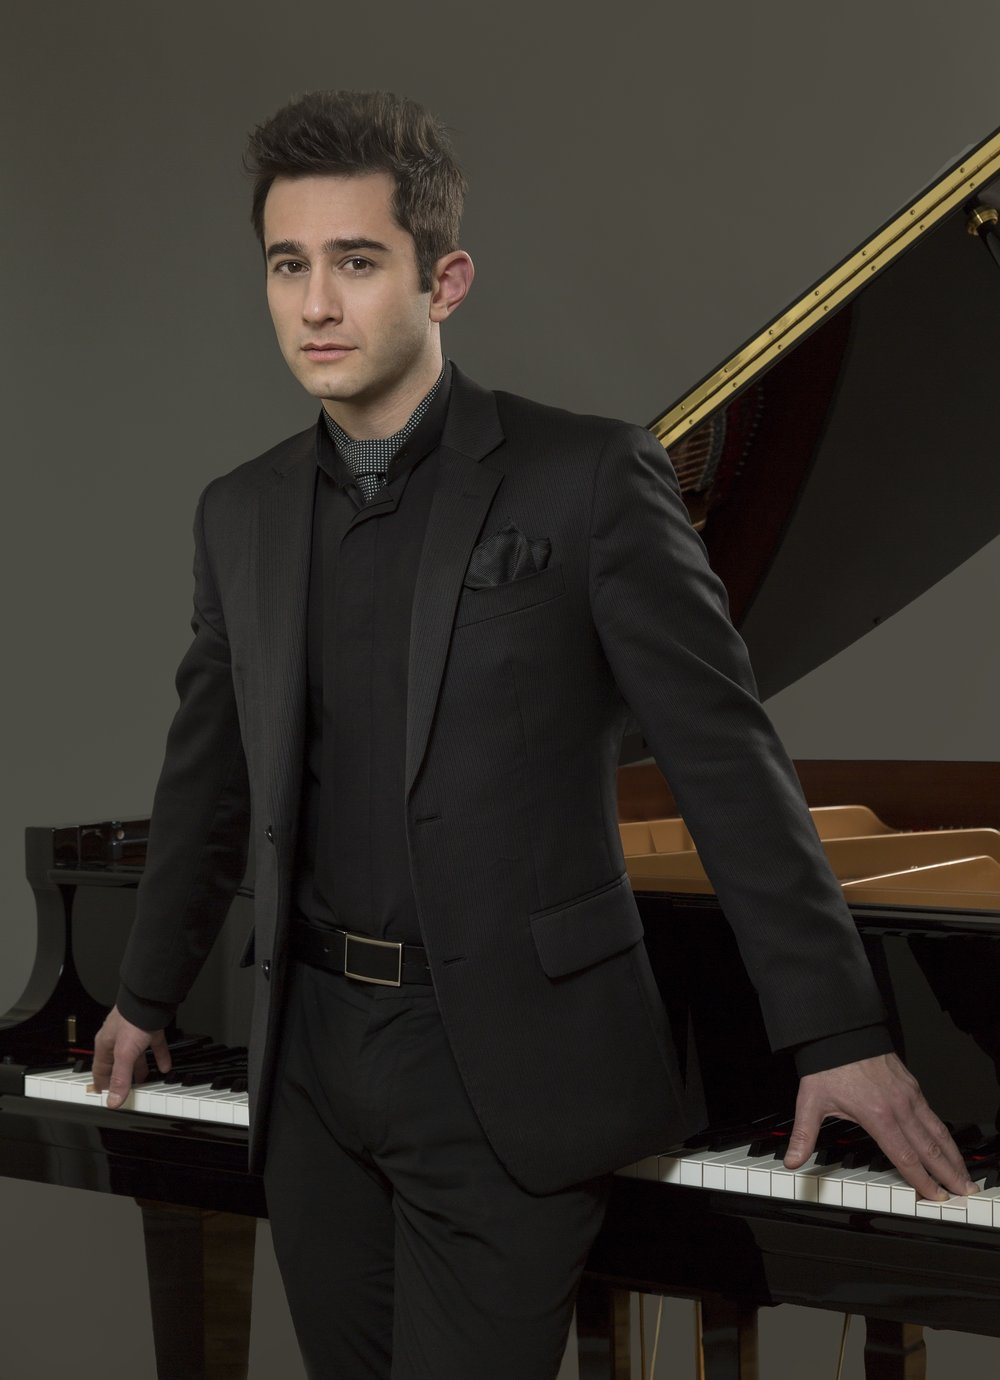 MattBaker_Katz_Press shot Piano_D8C2647b.jpg